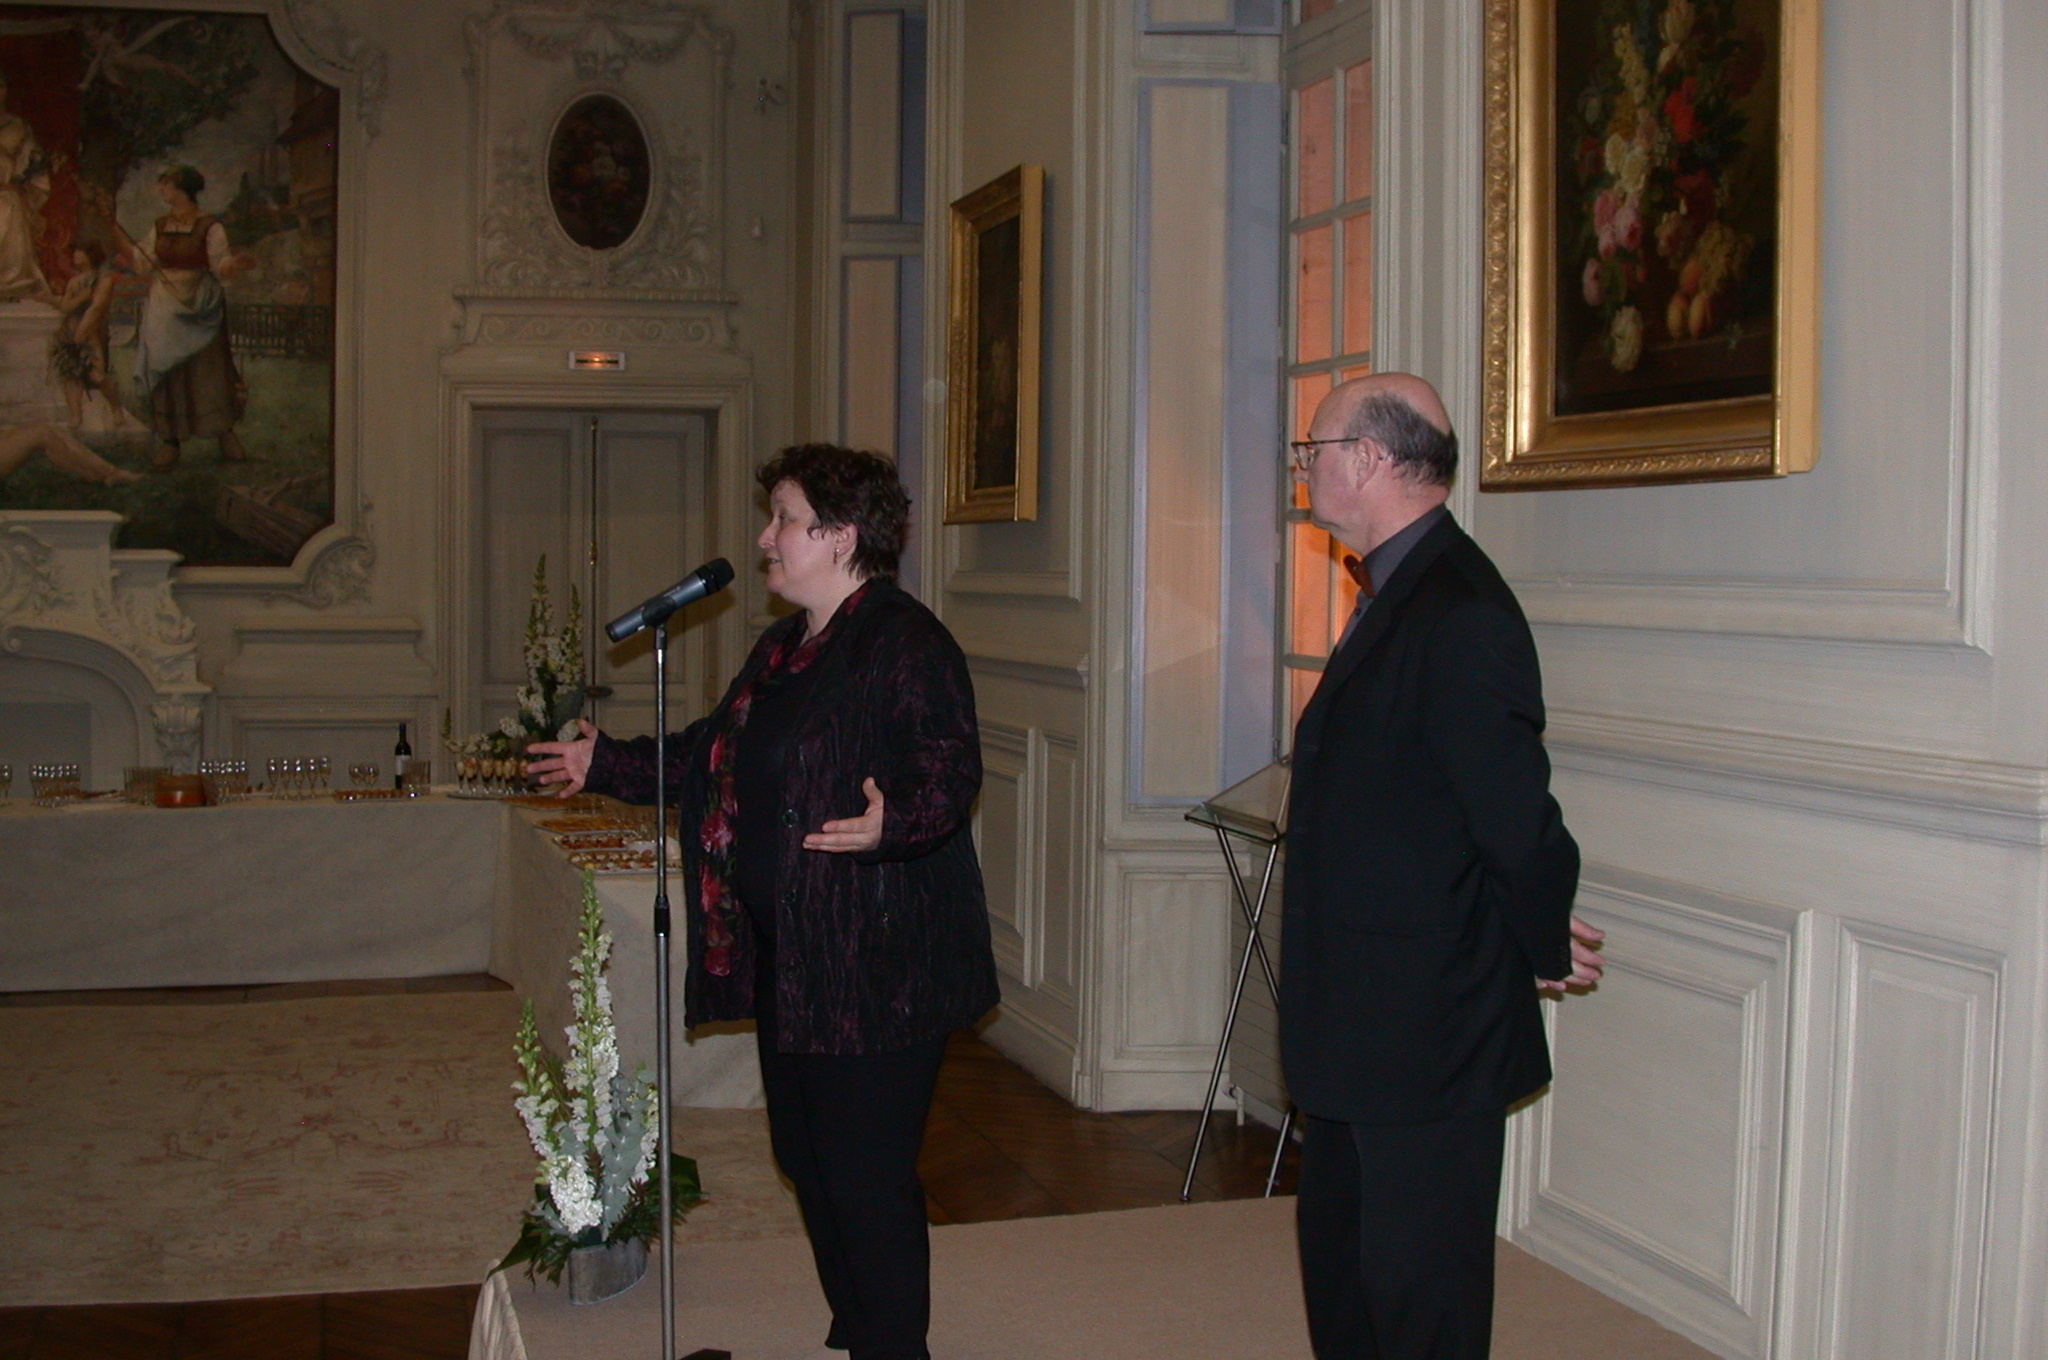 DSCN0126.jpg - The mayor of Amiens, Mme. Brigitte Foure speaks...